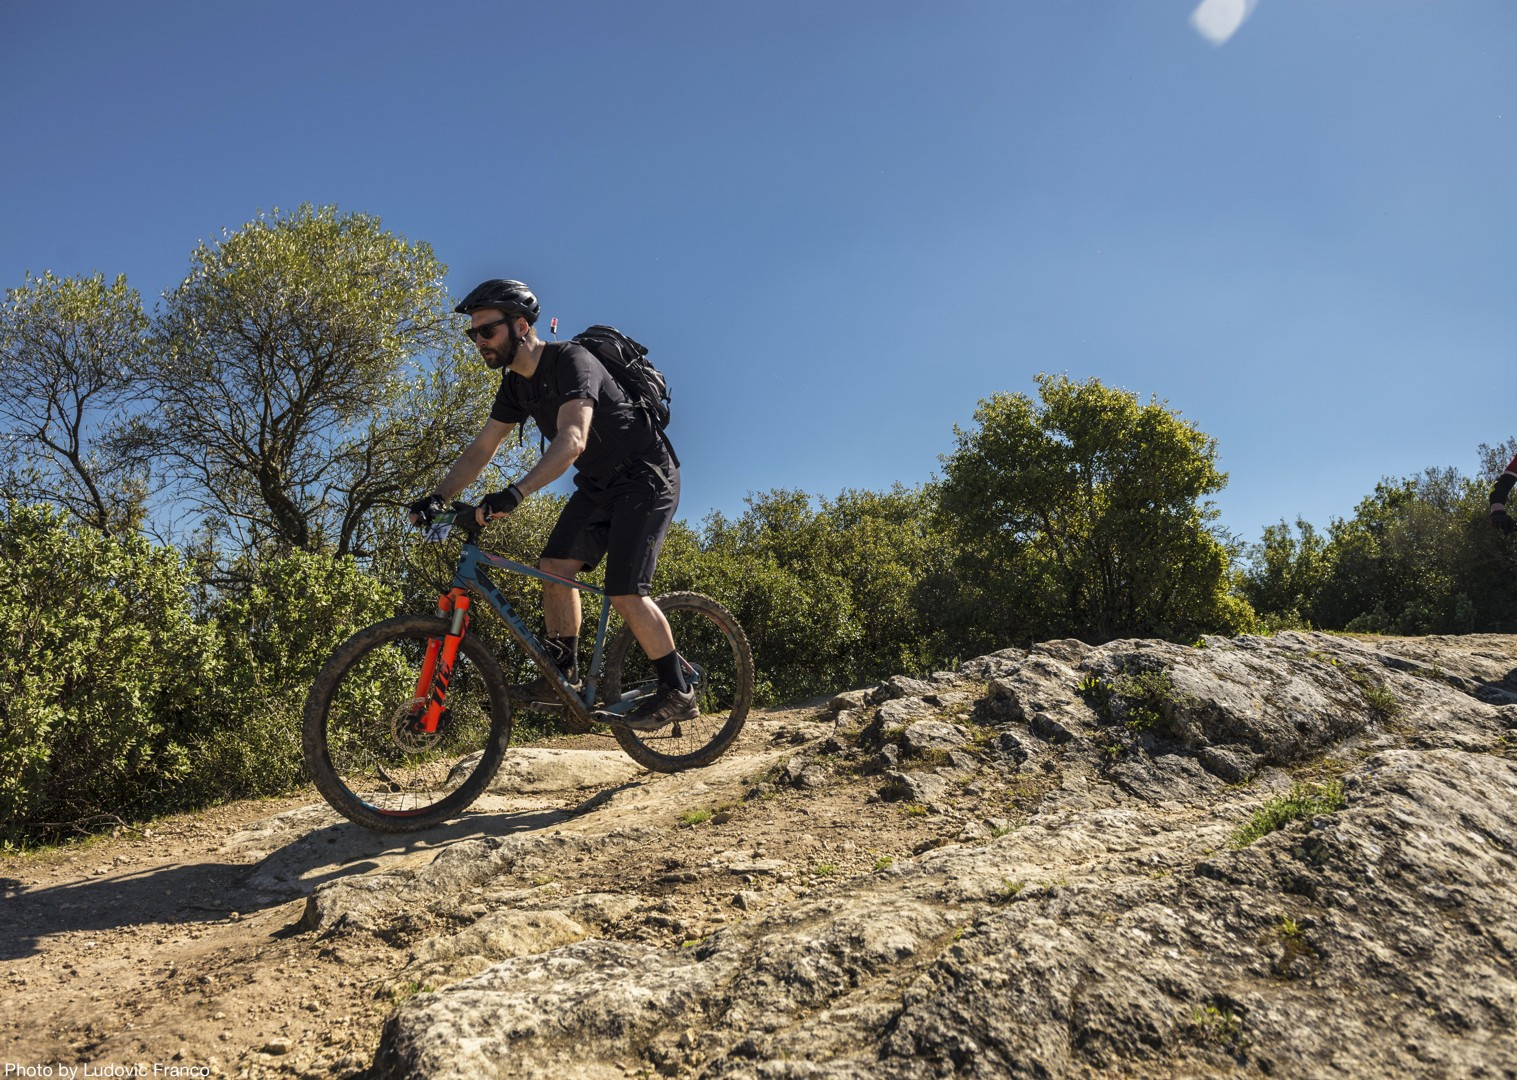 picturesque-adventure-cycling-holiday-atlantic-trails-portugal.jpg - Portugal - Atlantic Trails - Mountain Biking